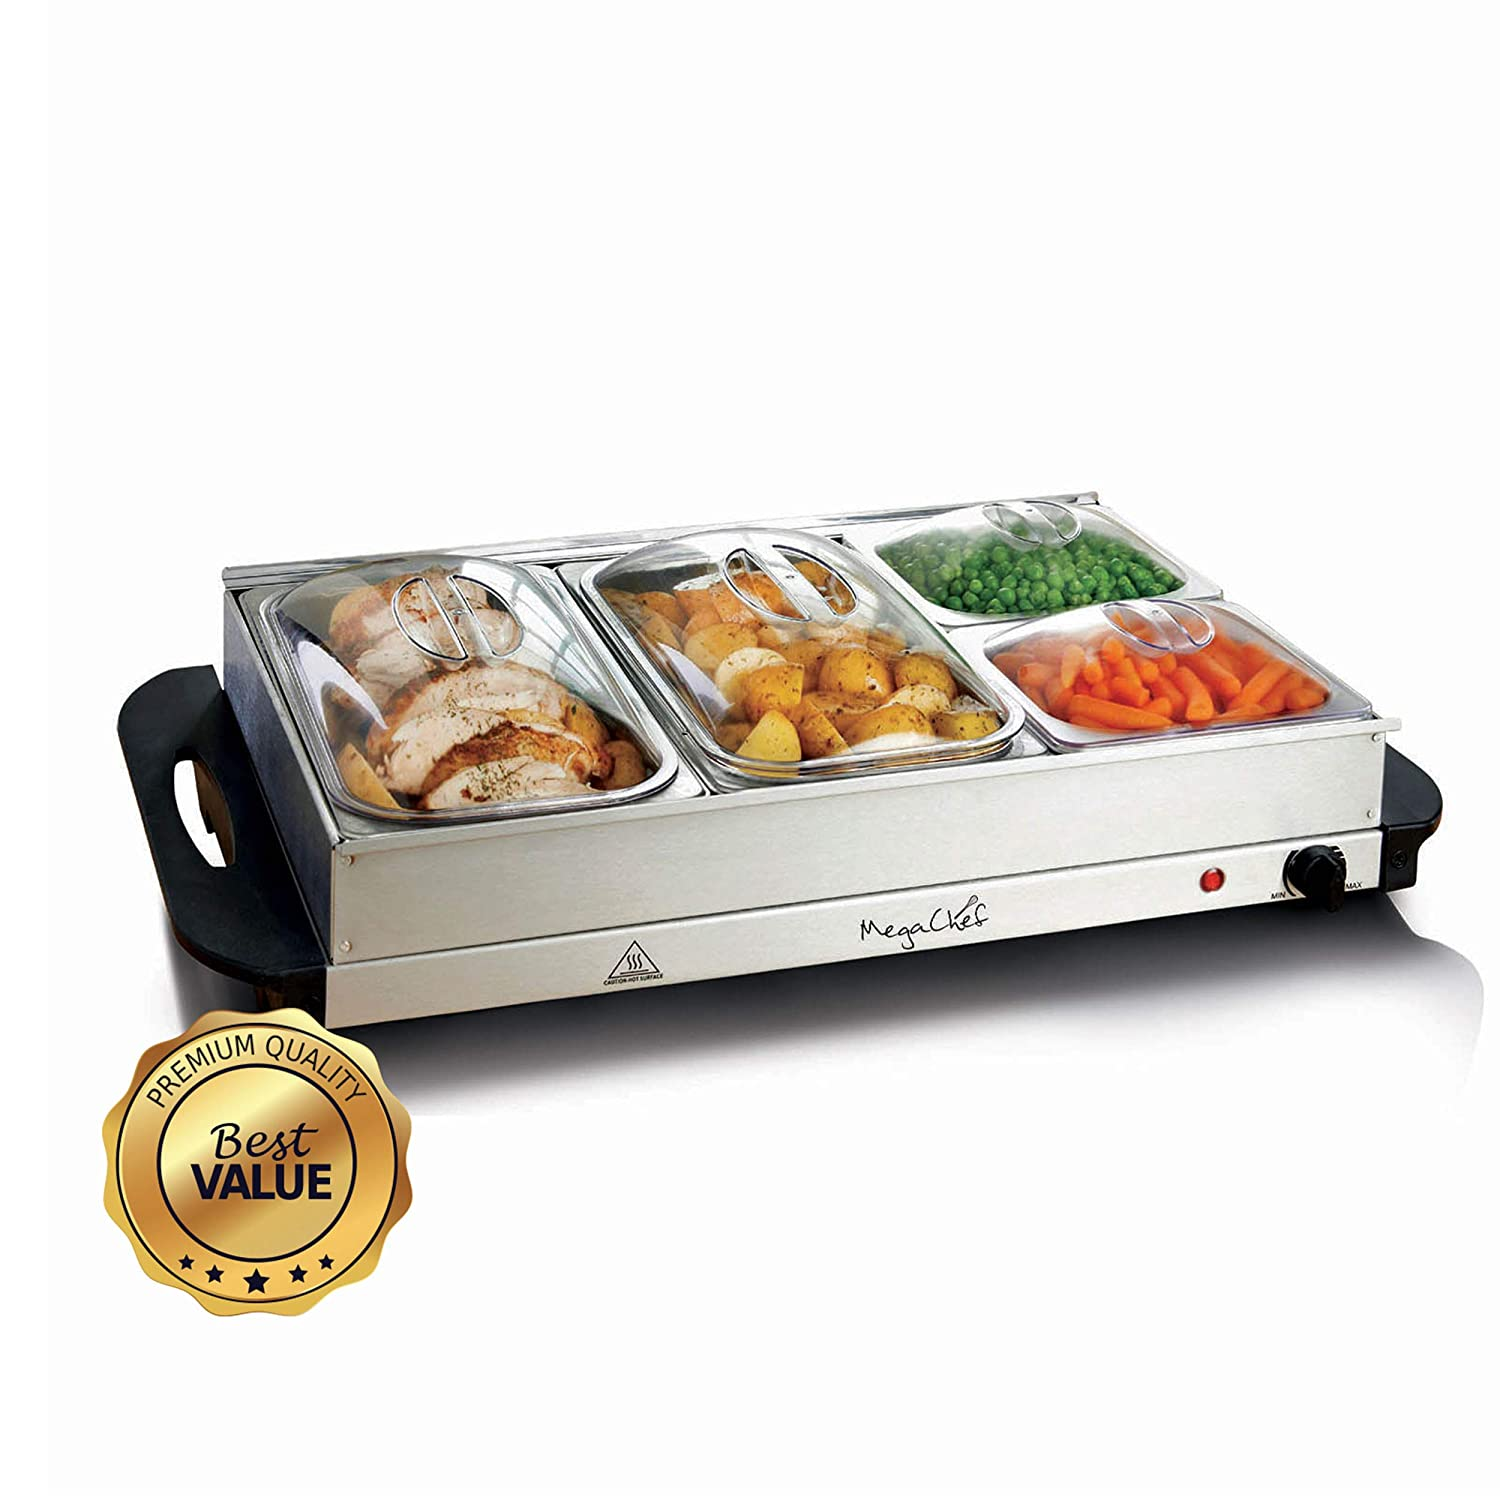 Megachef 93090024M Buffet Server-Professional Hot Plate Food Warmer Station, Easy Clean Stainless Steel, Portable & for Parties, 4 Section, Silver